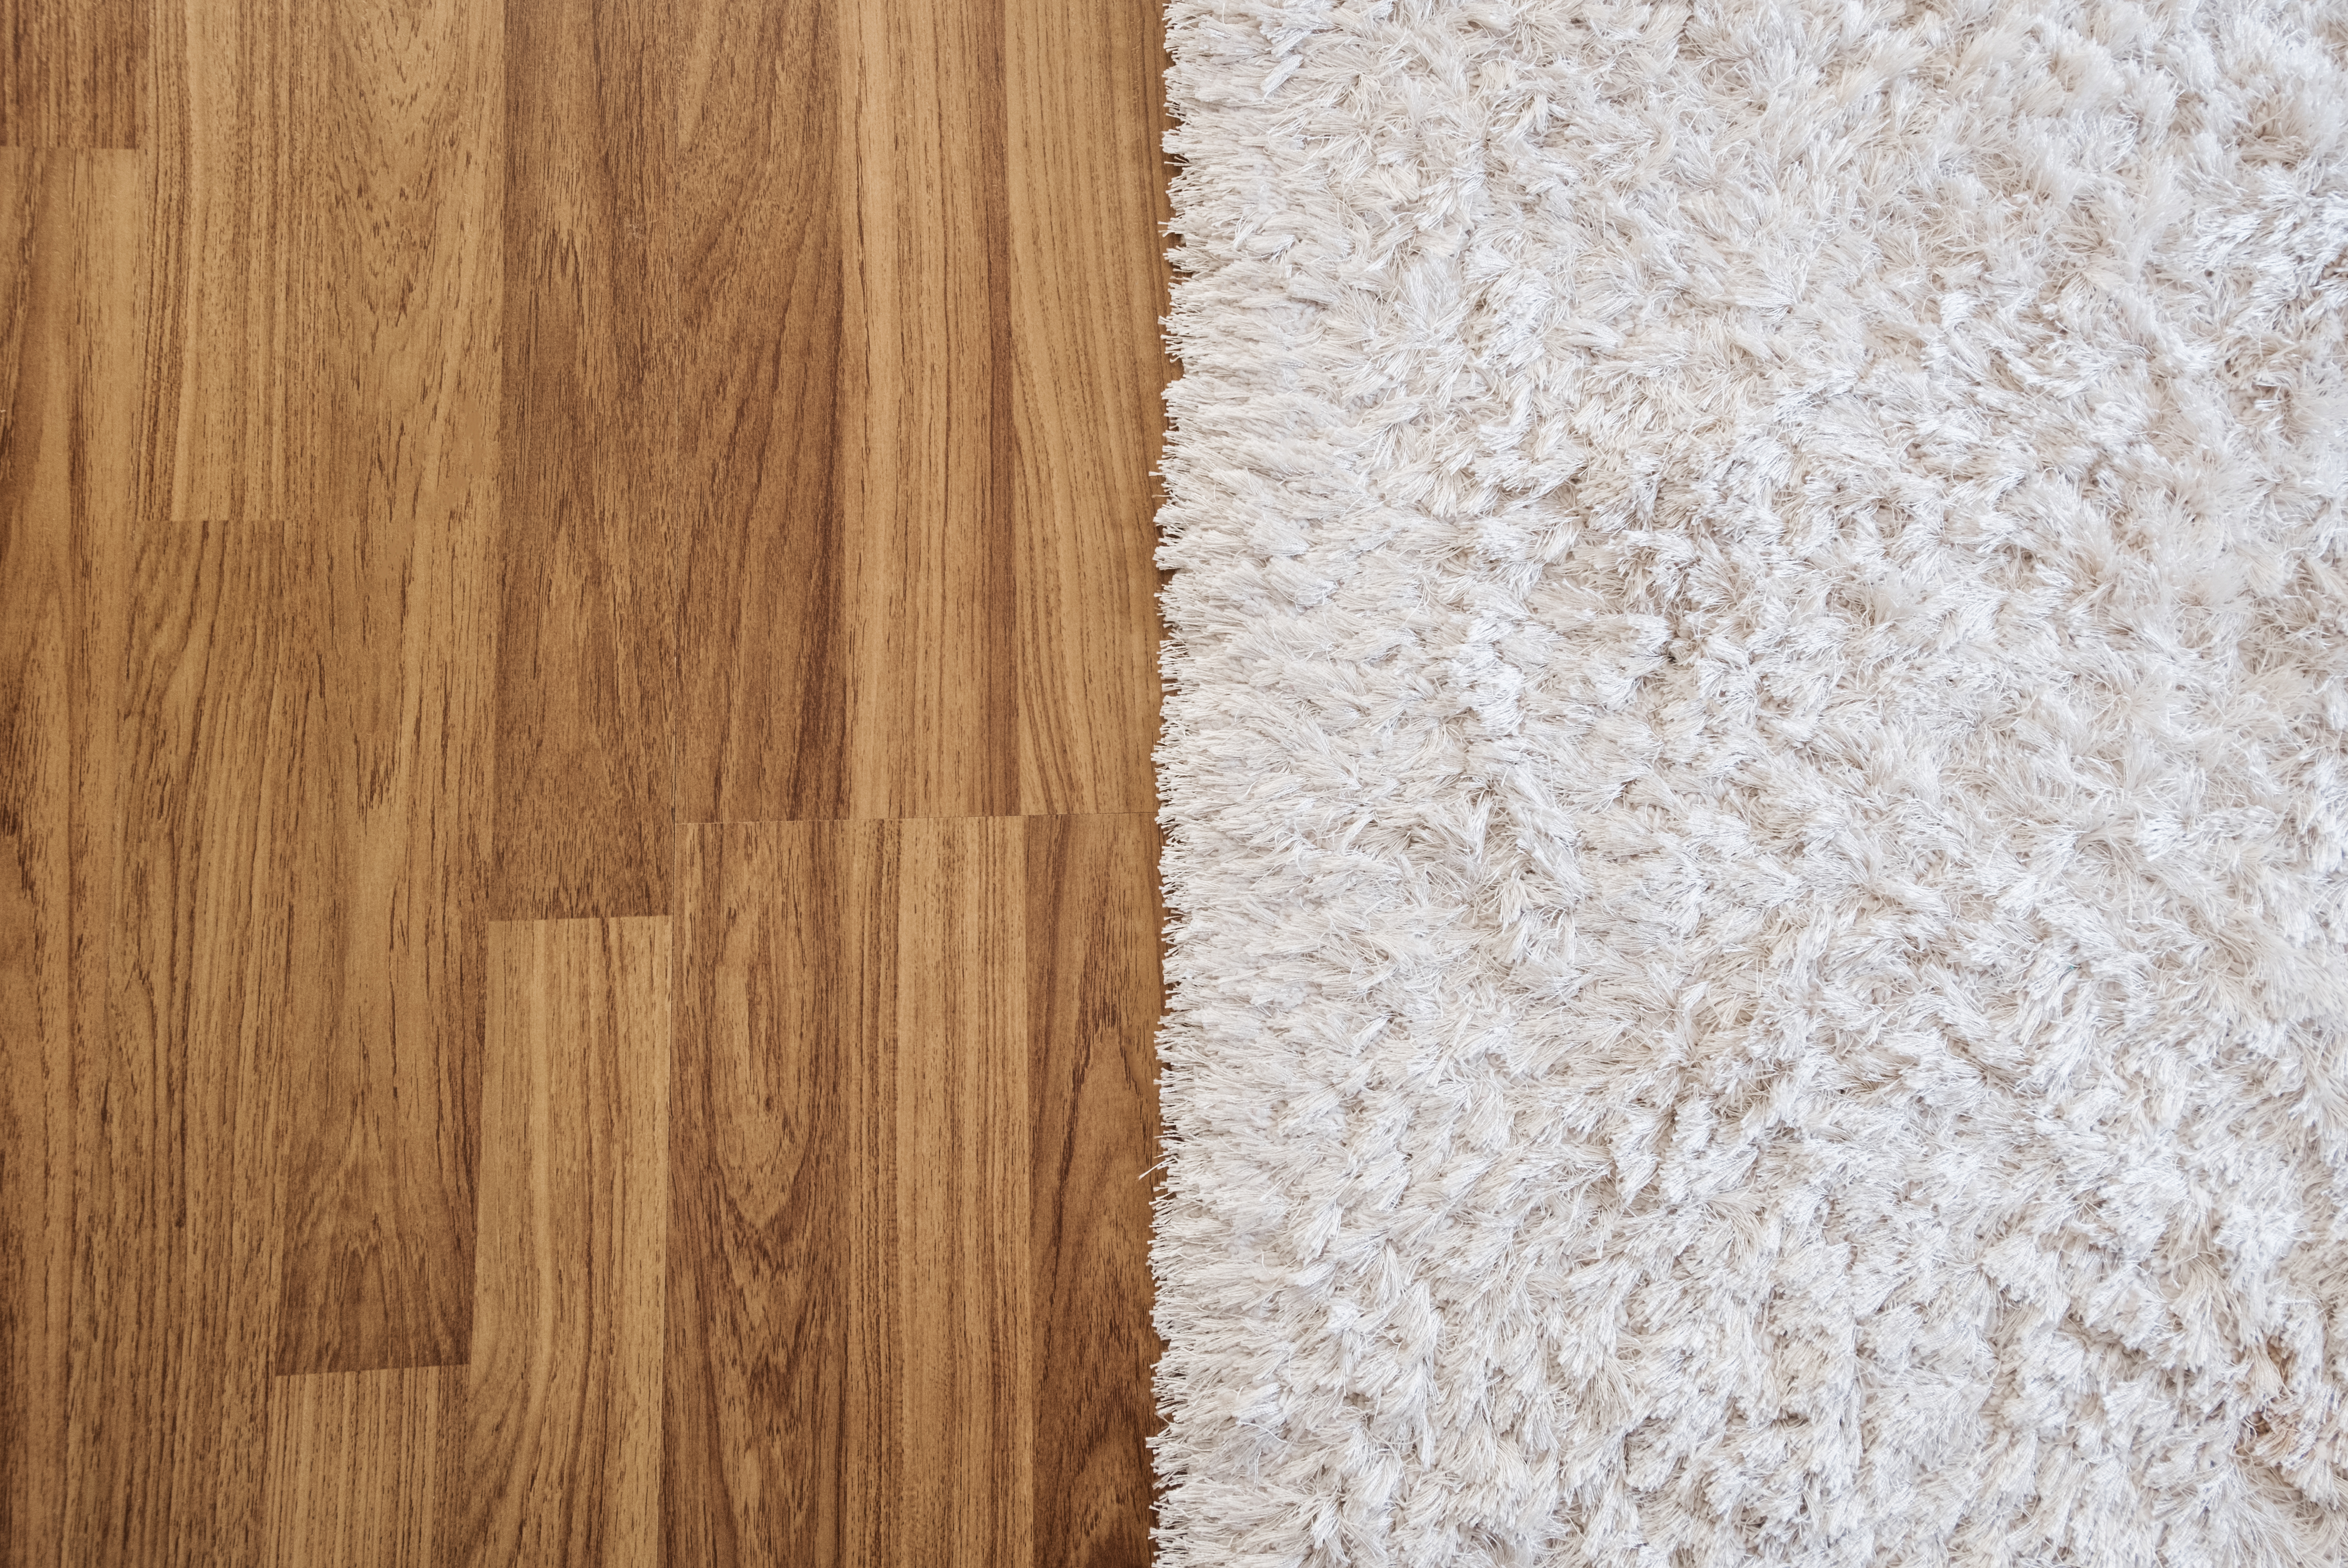 How To Straighten A Warped Floor Home Guides Sf Gate